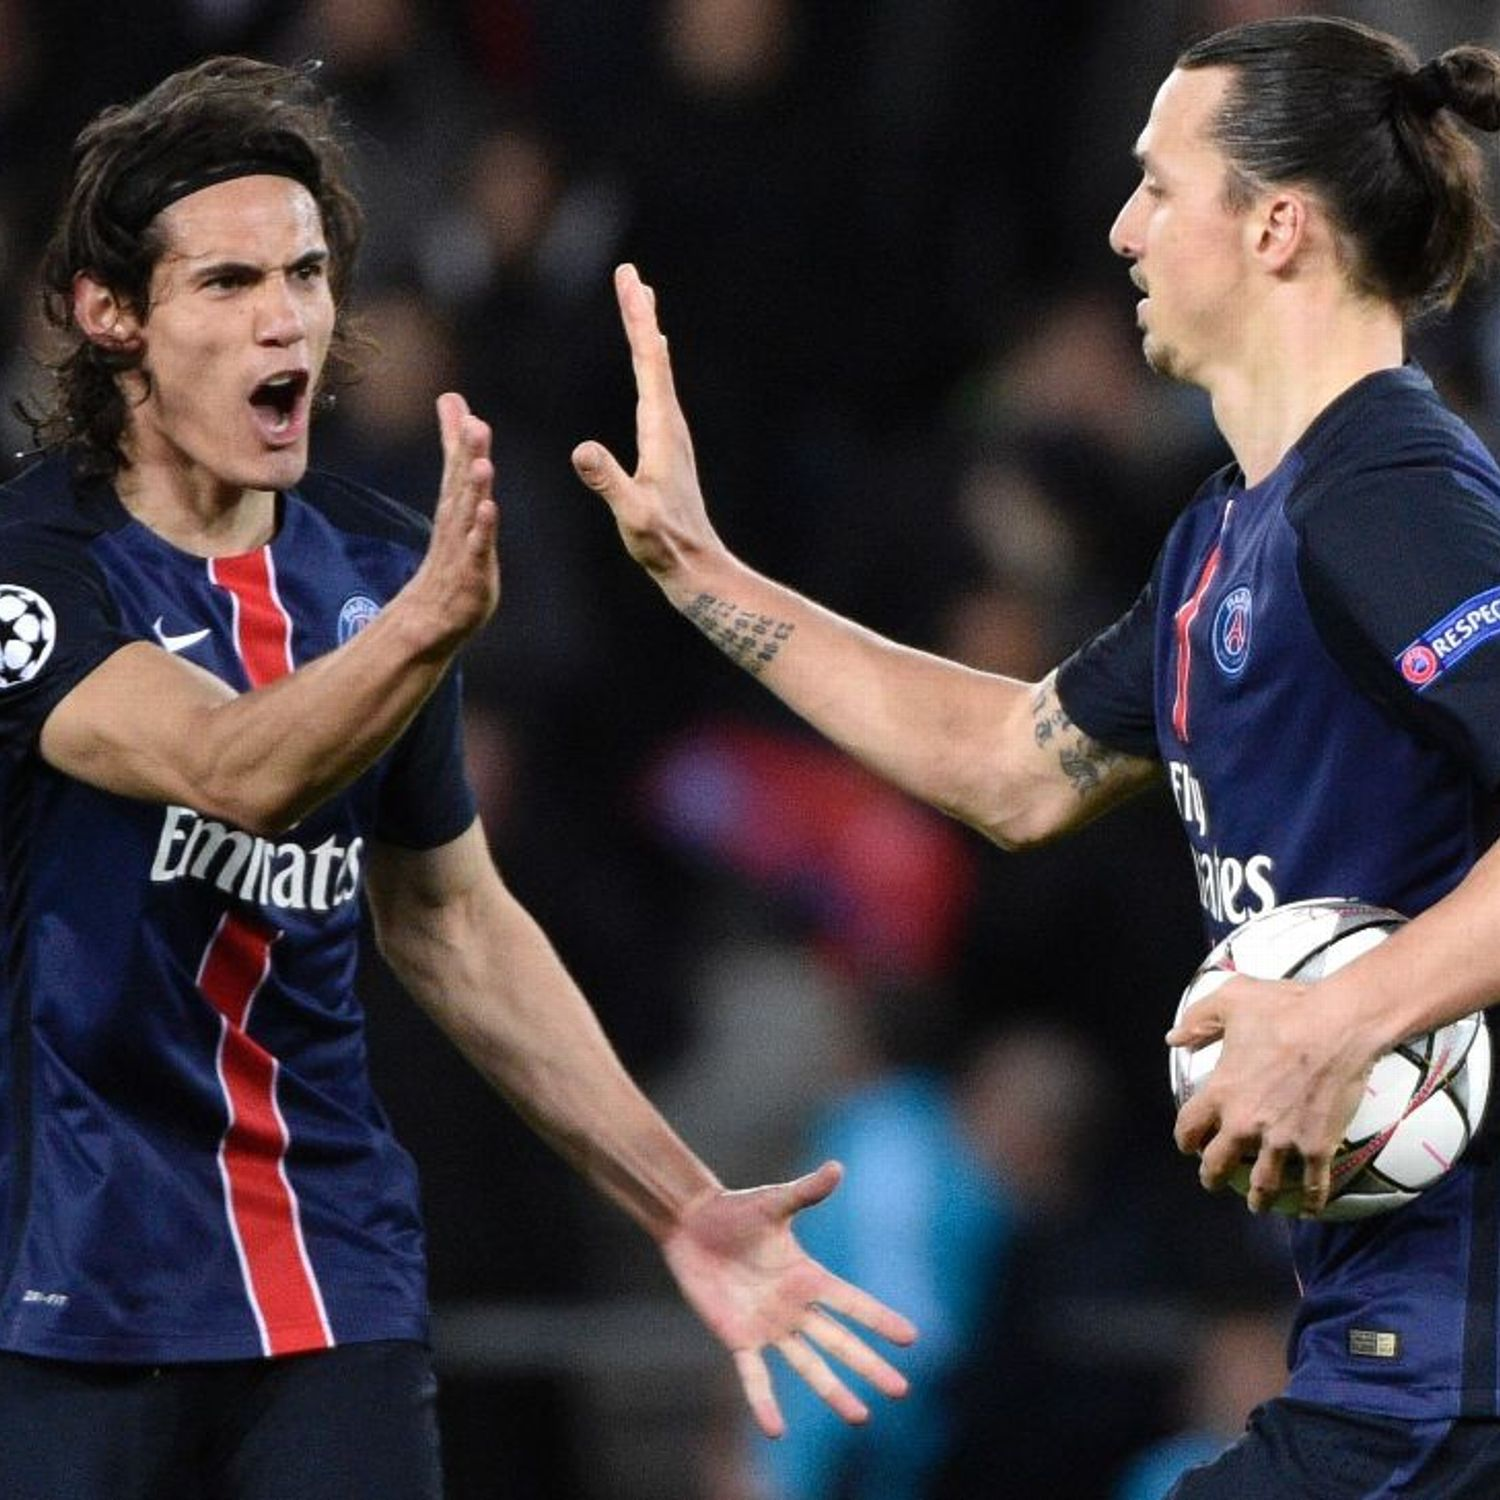 Unai Emery Hopes Edinson Cavani Tops Zlatan Ibrahimovic S Psg Goals Record